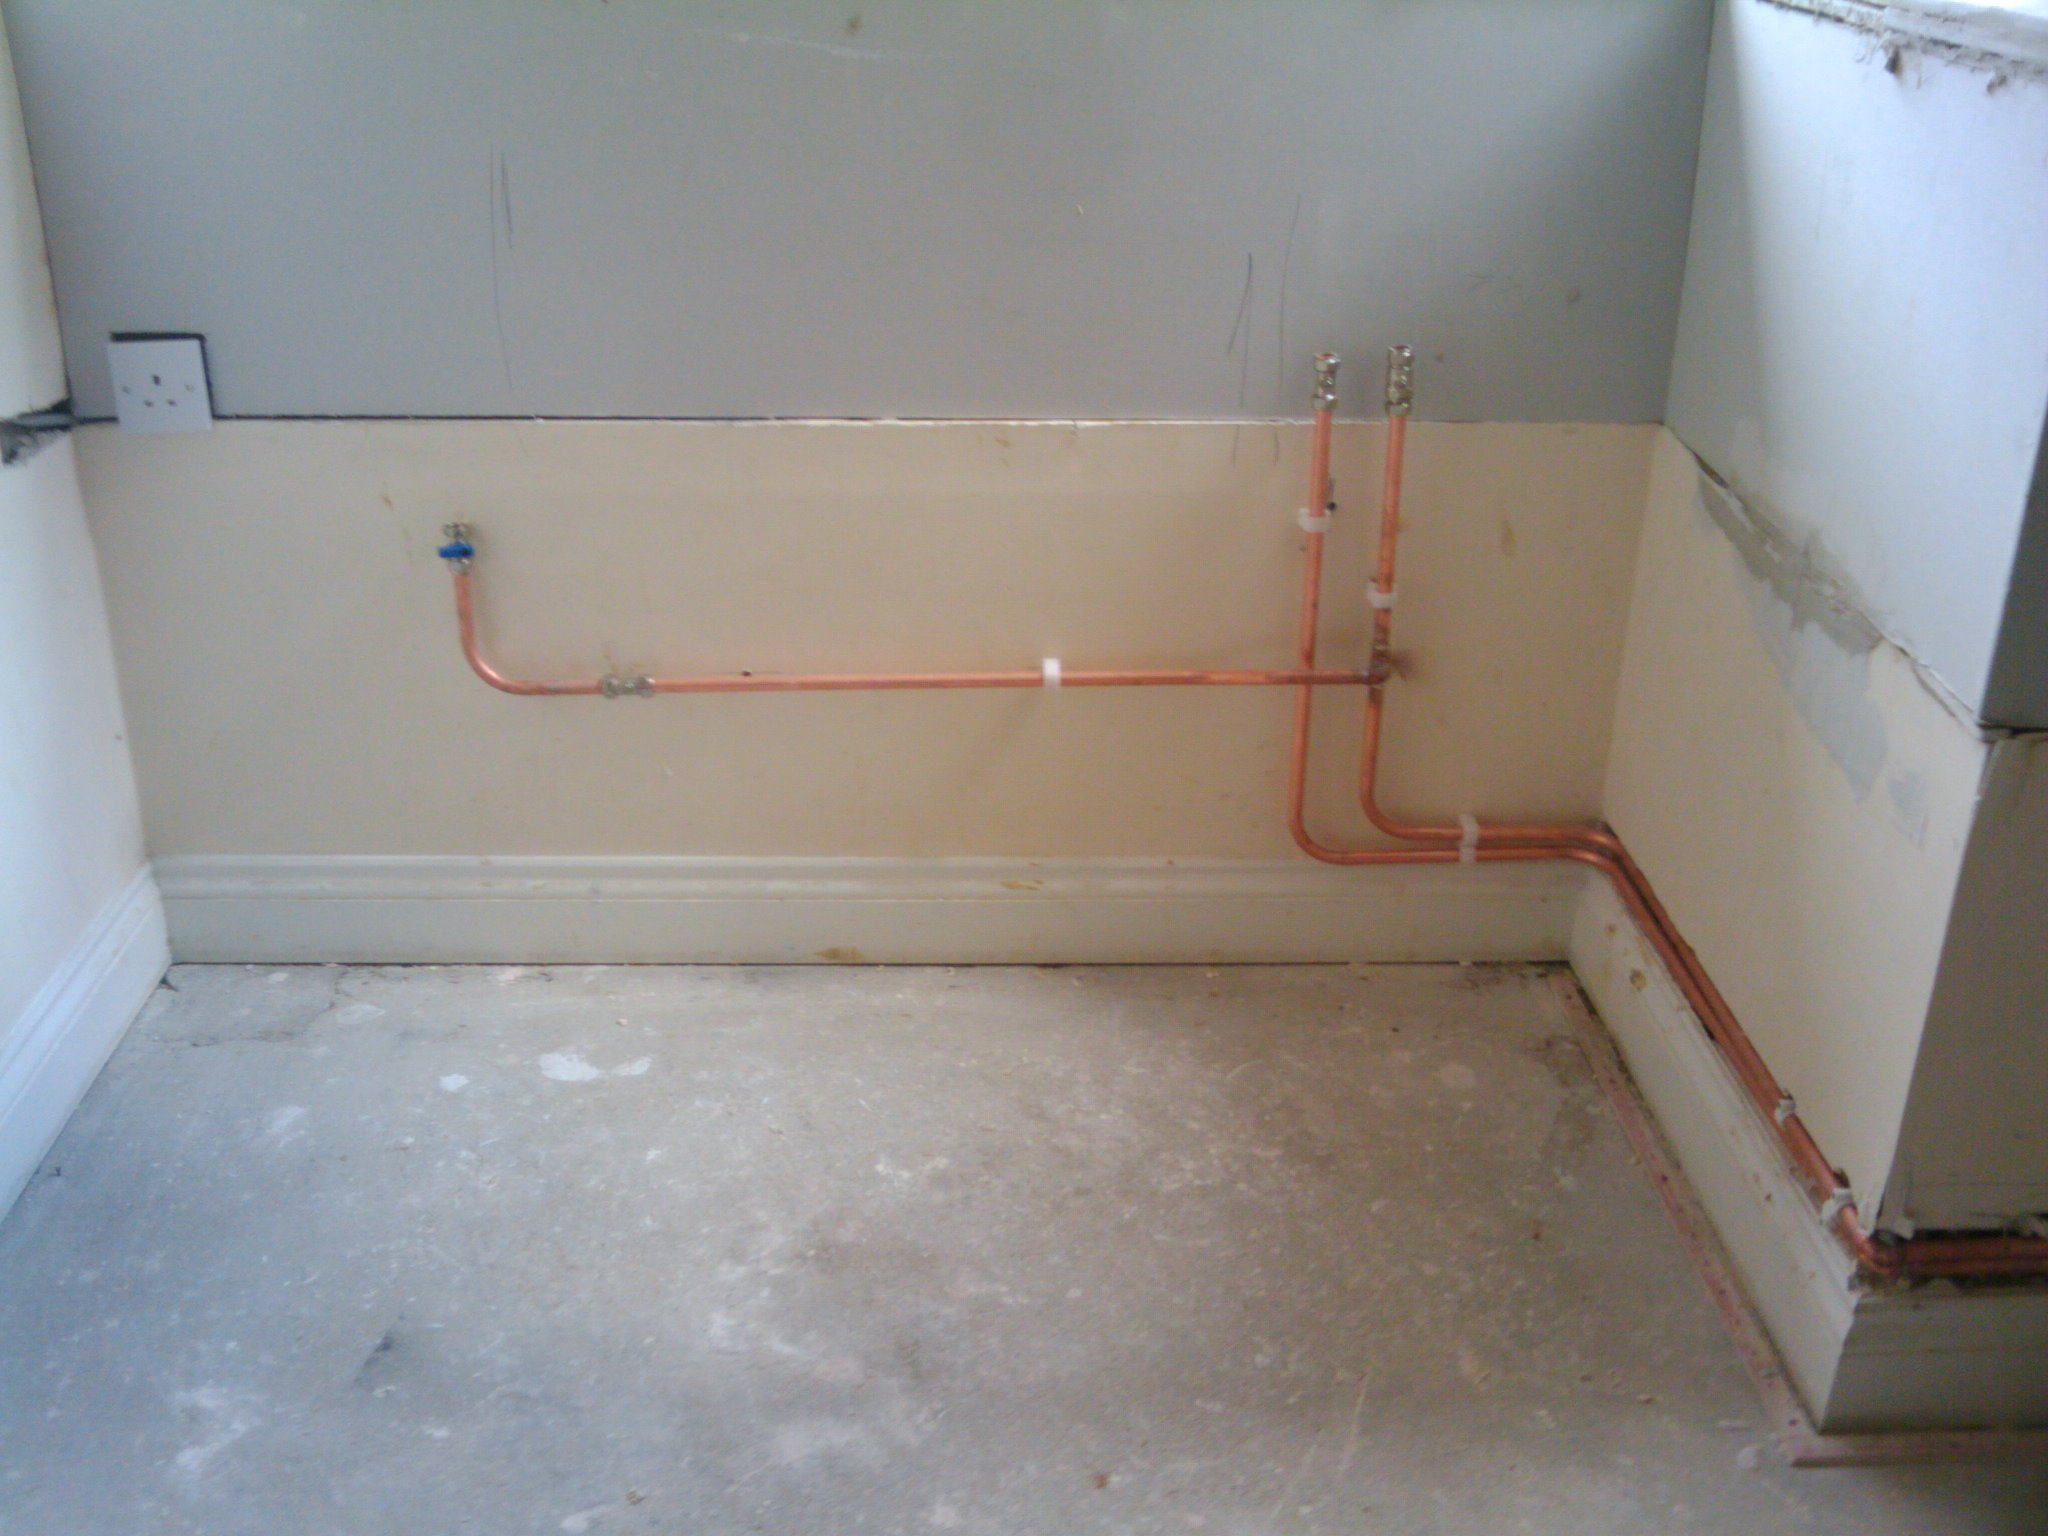 Wall Mounted Bath Shower Mixer Taps Problem Pipes Not Properly Chased Into Wall My Extension